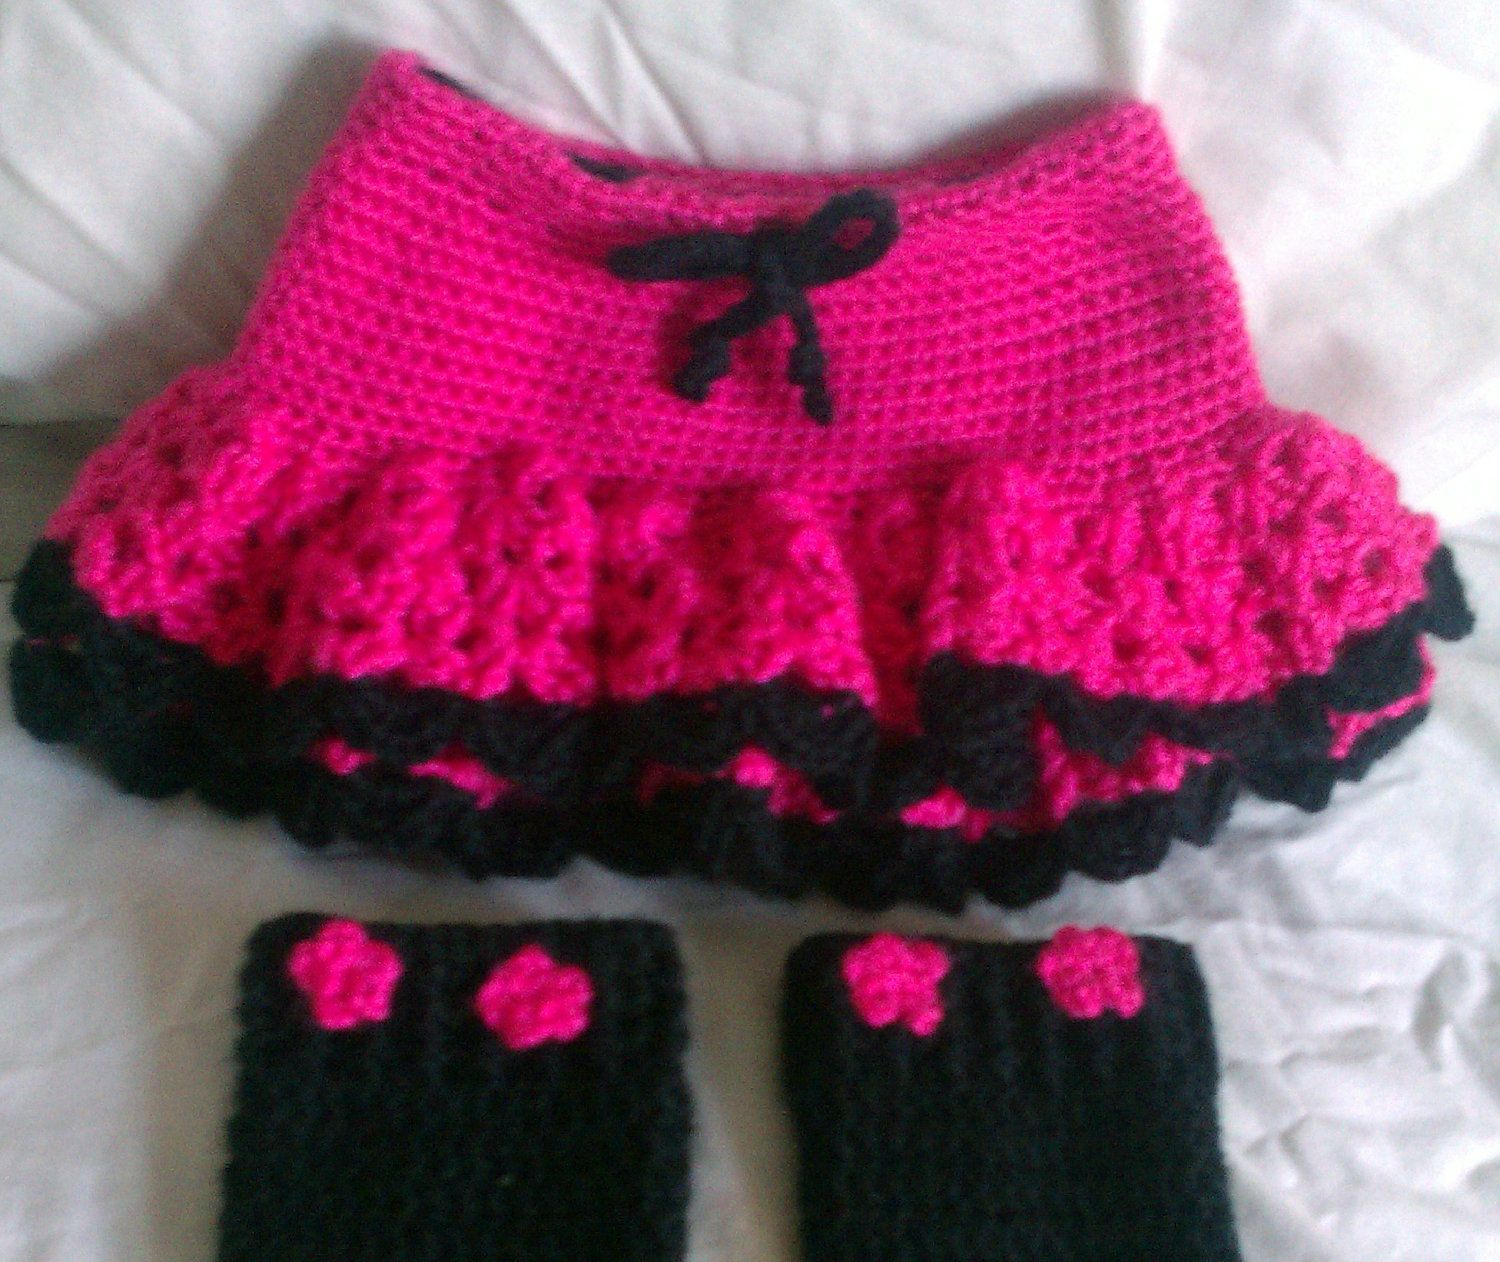 This is the skirtie wool diaper cover I had custom made for Ellianna ...